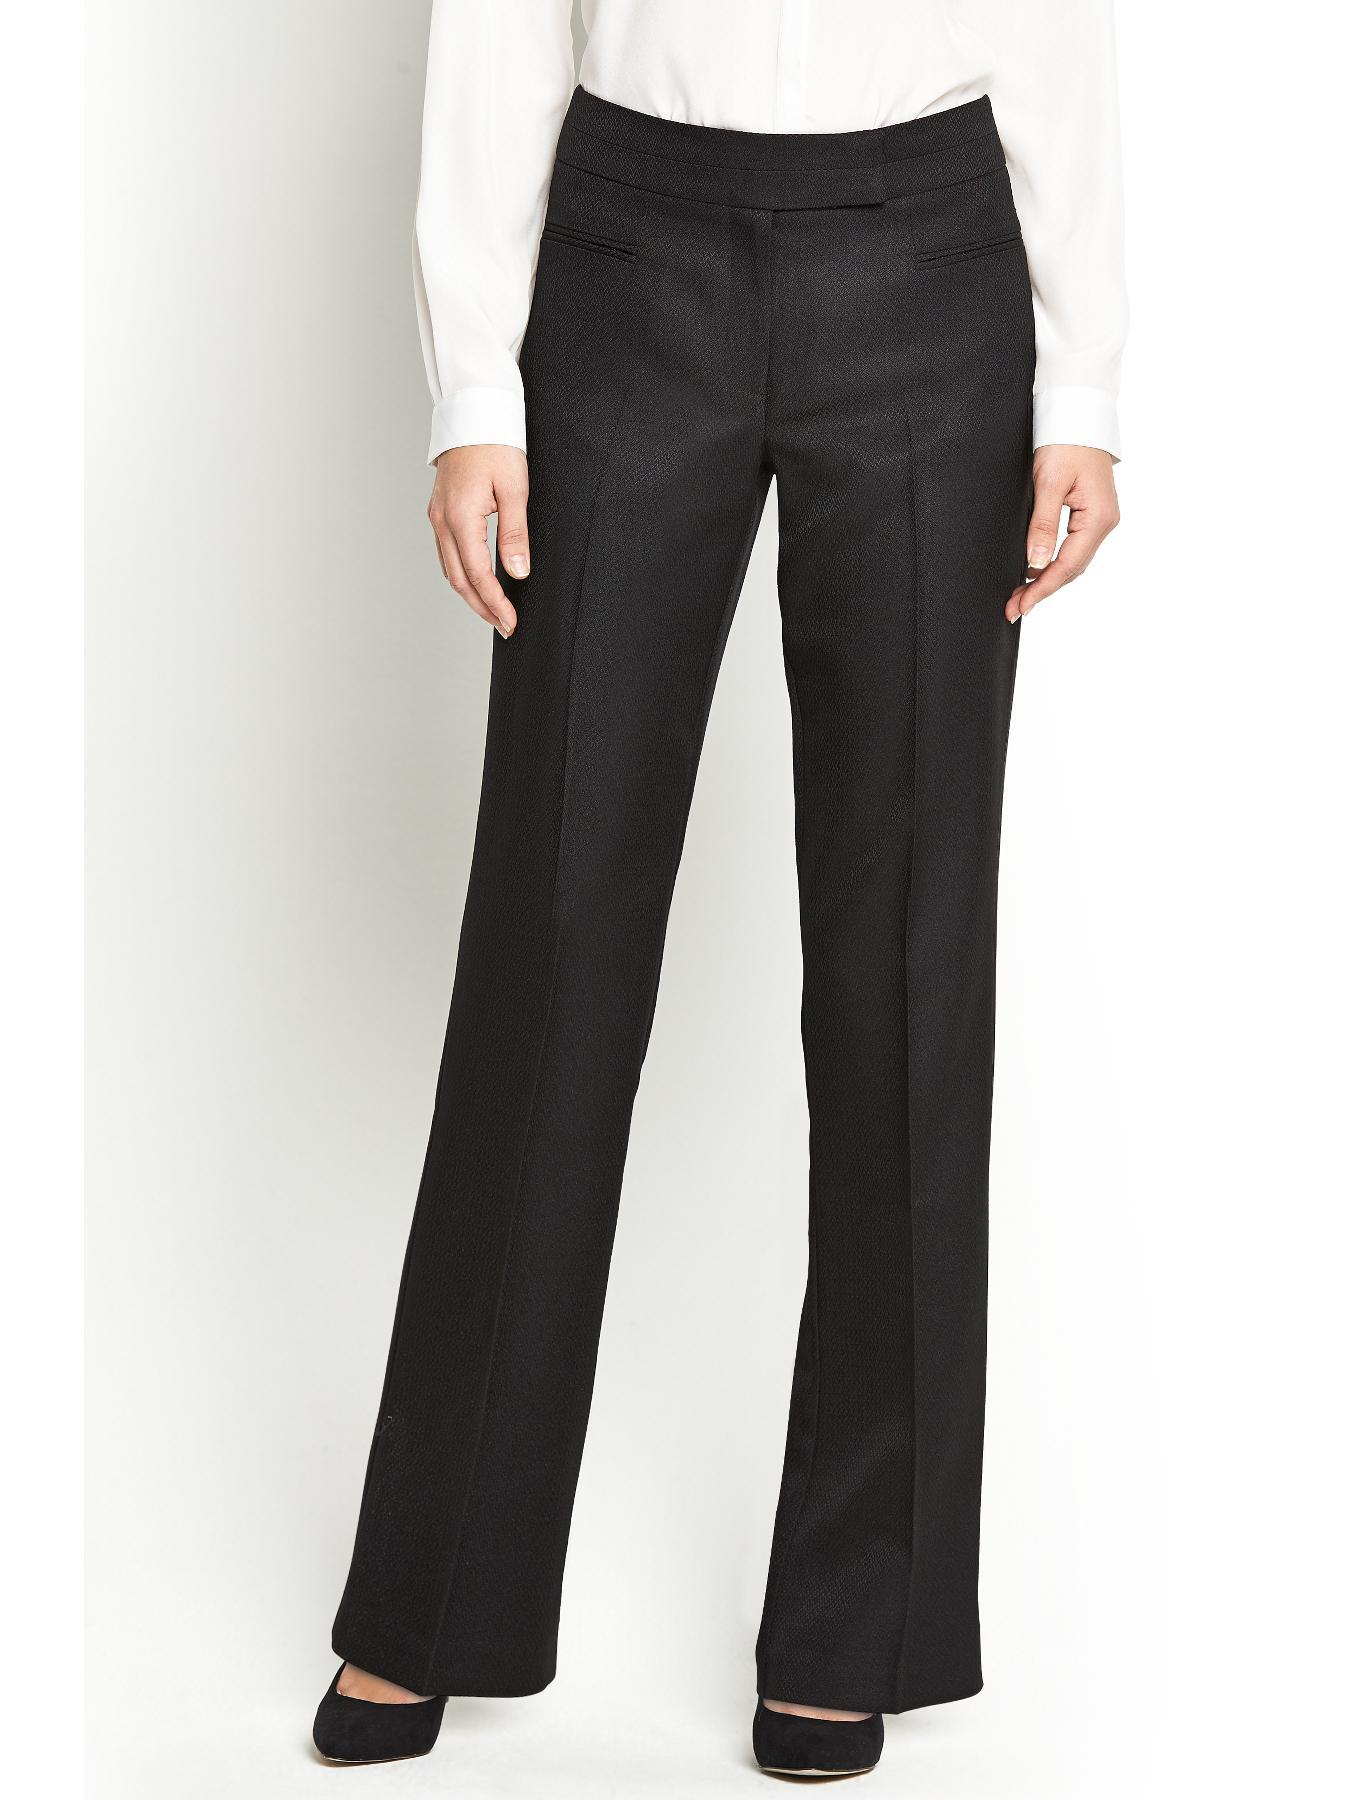 South Mix and Match Bootcut Trousers - Black, Black